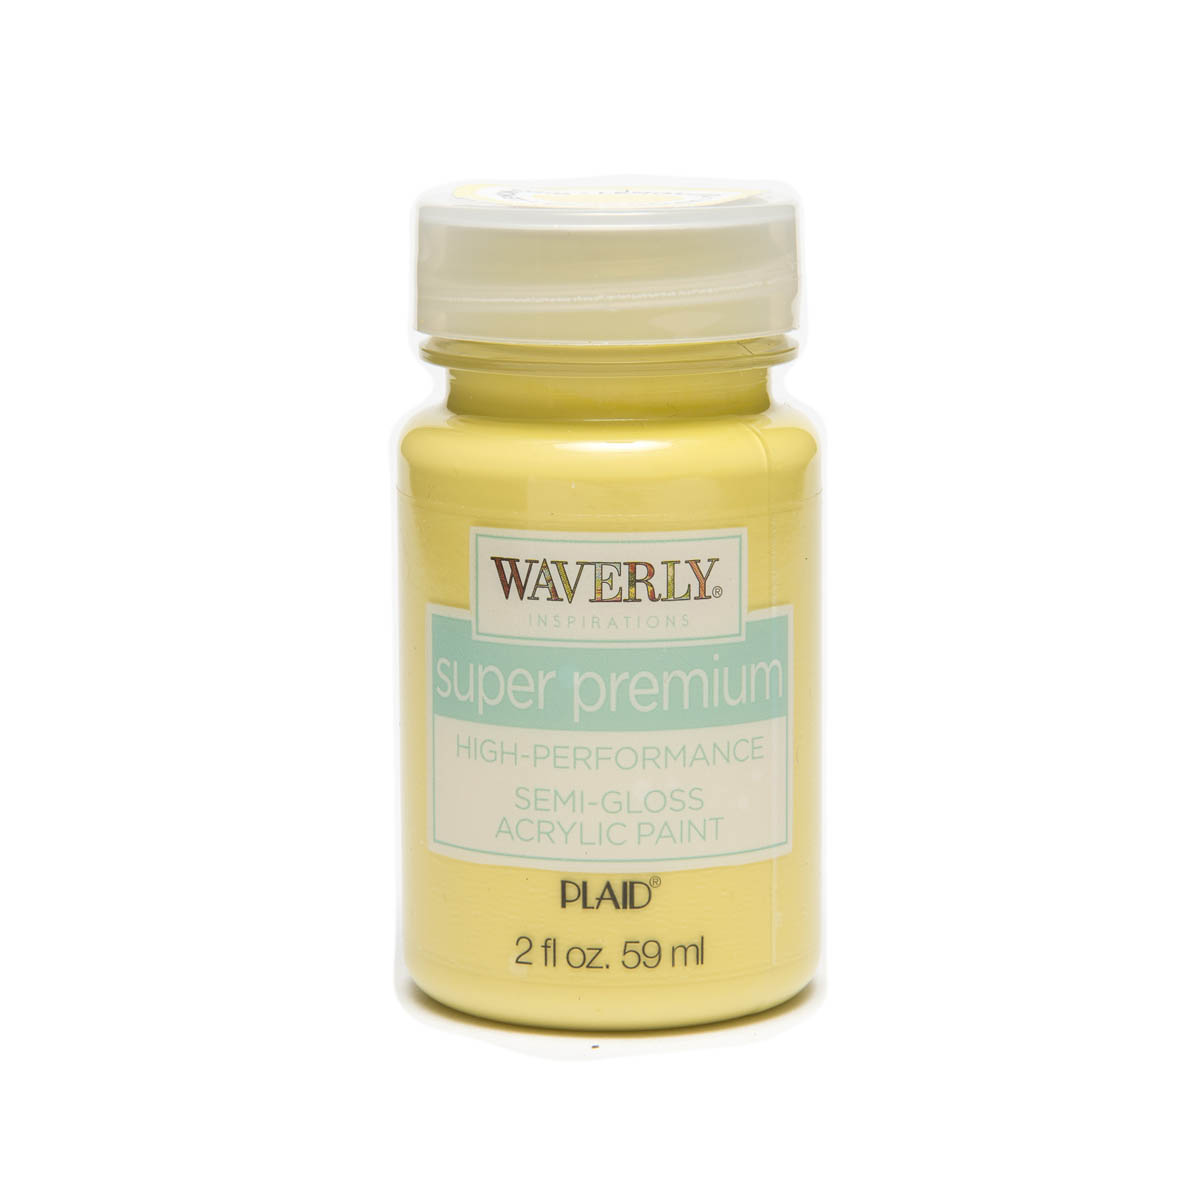 Waverly ® Inspirations Super Premium Semi-Gloss Acrylic Paint - Lemon Curd, 2 oz.